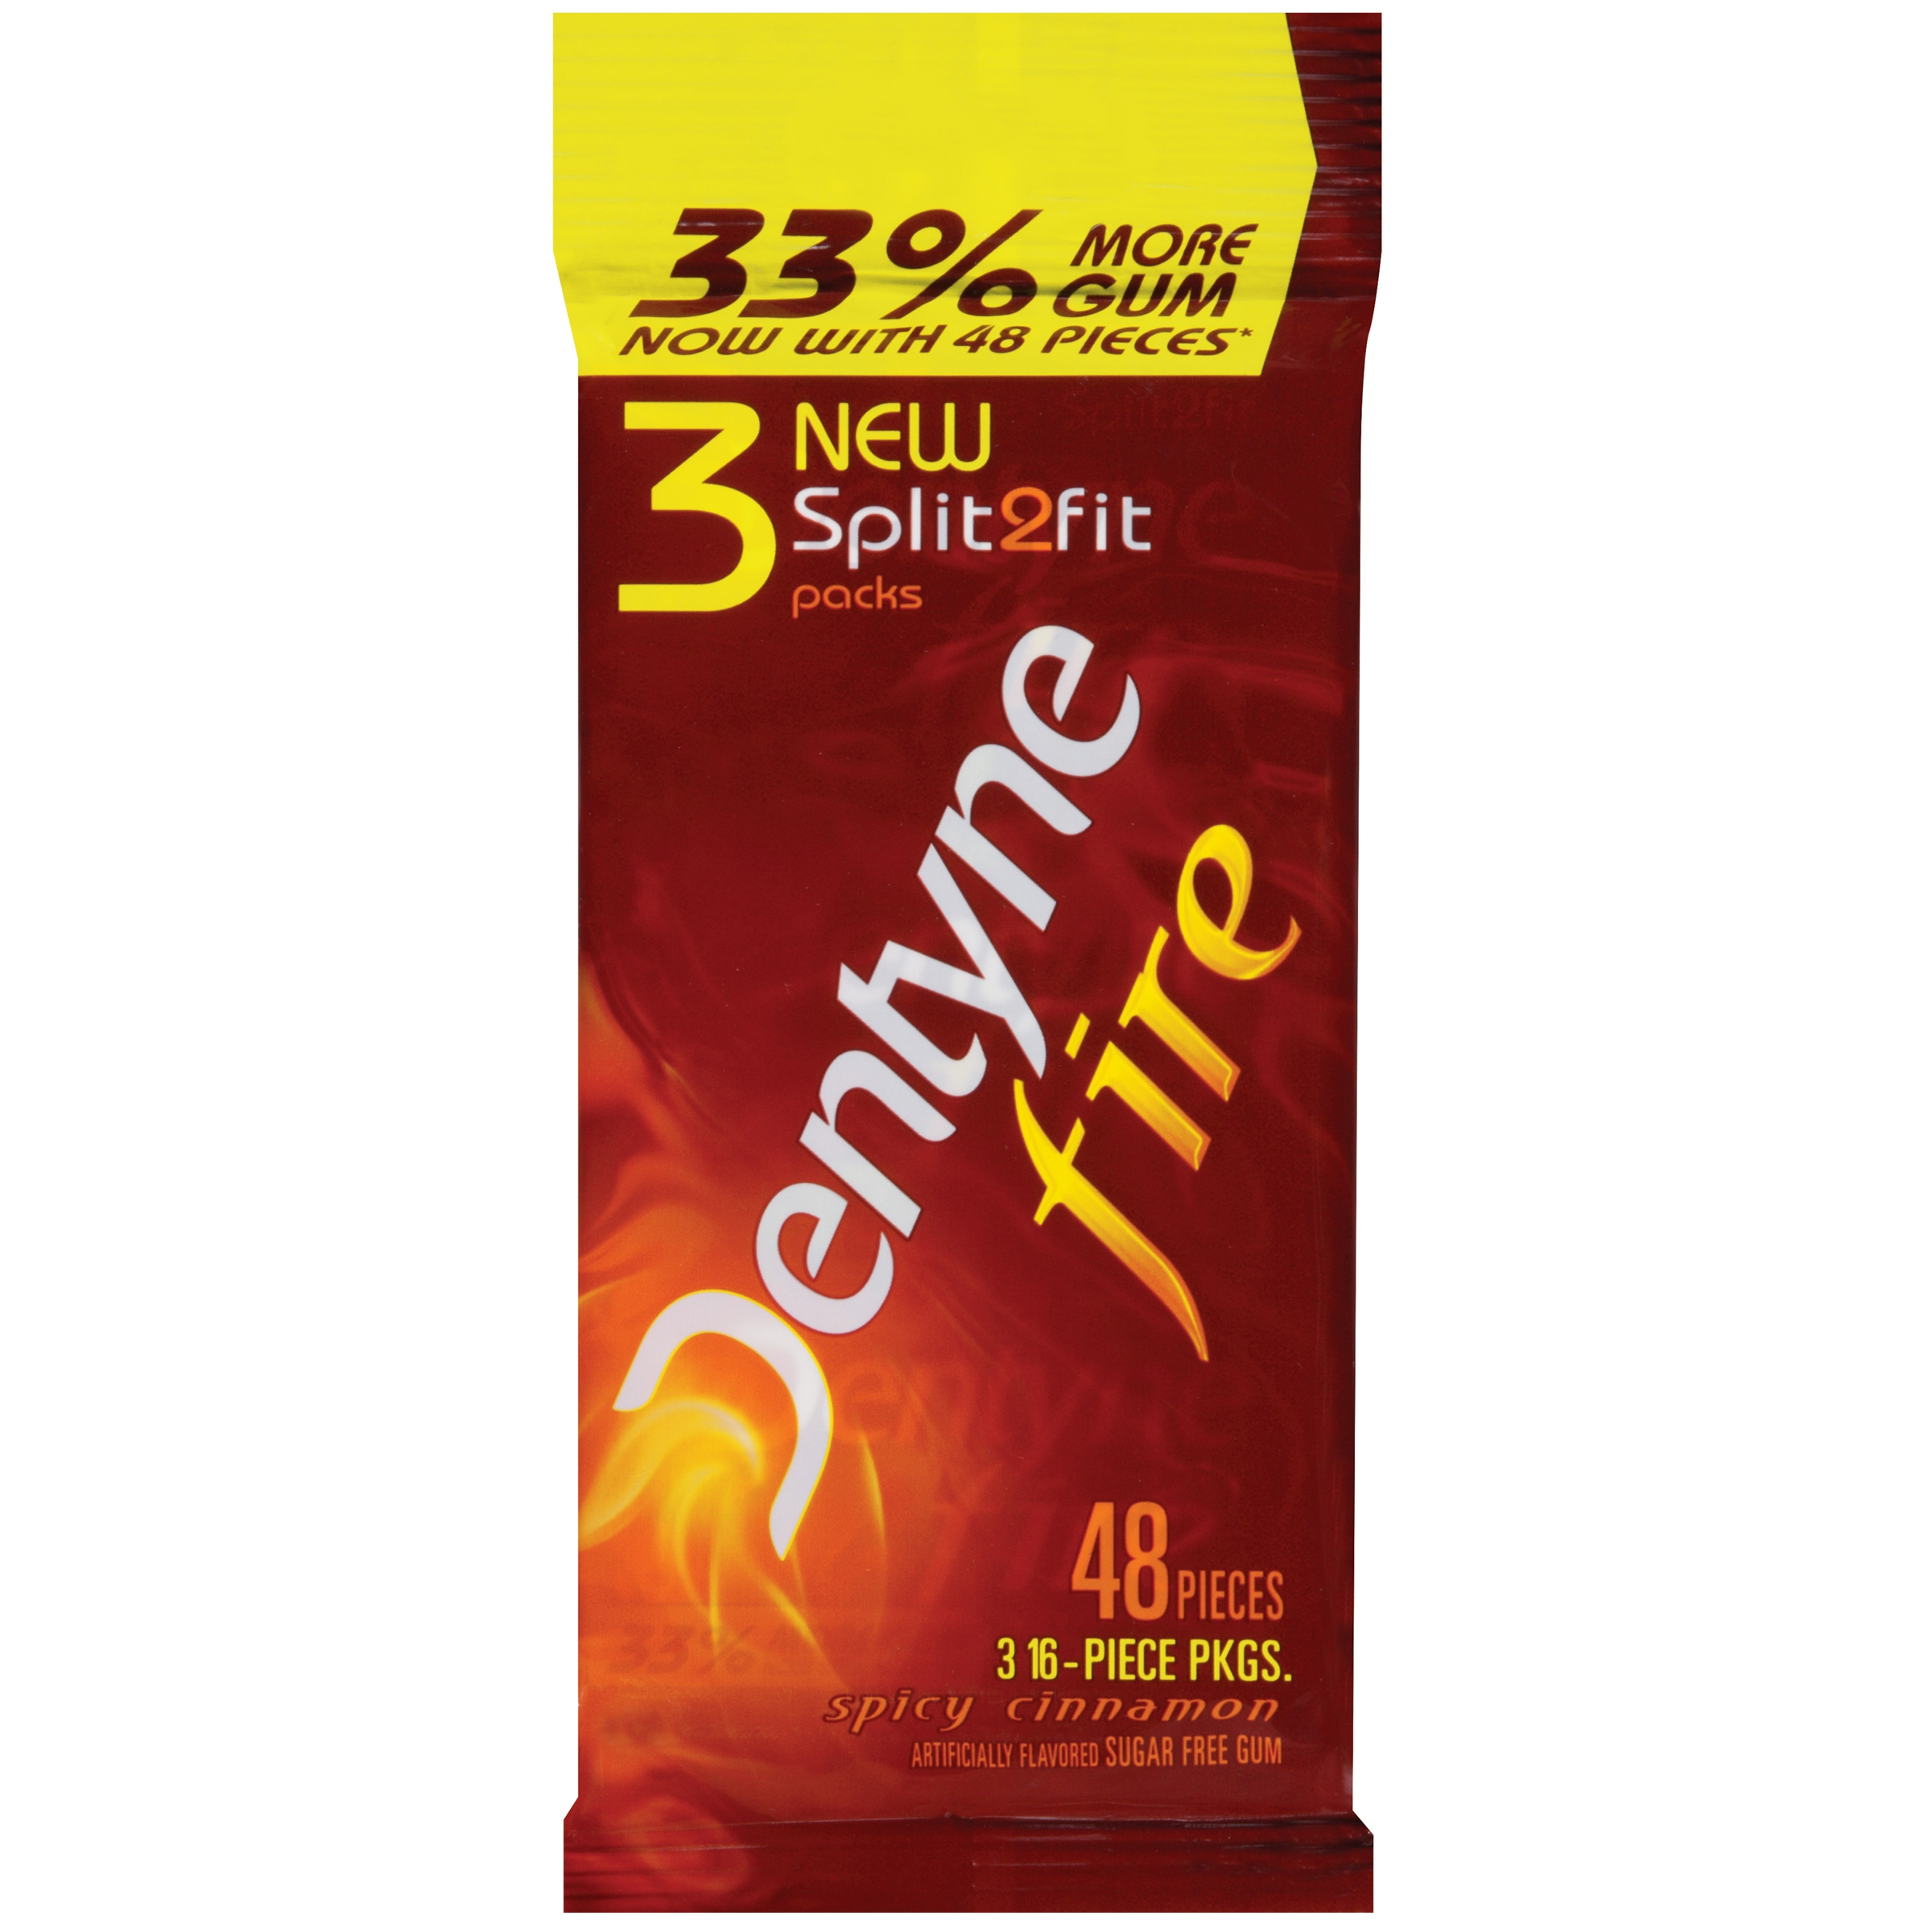 Dentyne Fire Spicy Cinnamon Sugar Free Gum, 3 pack by Kraft Foods